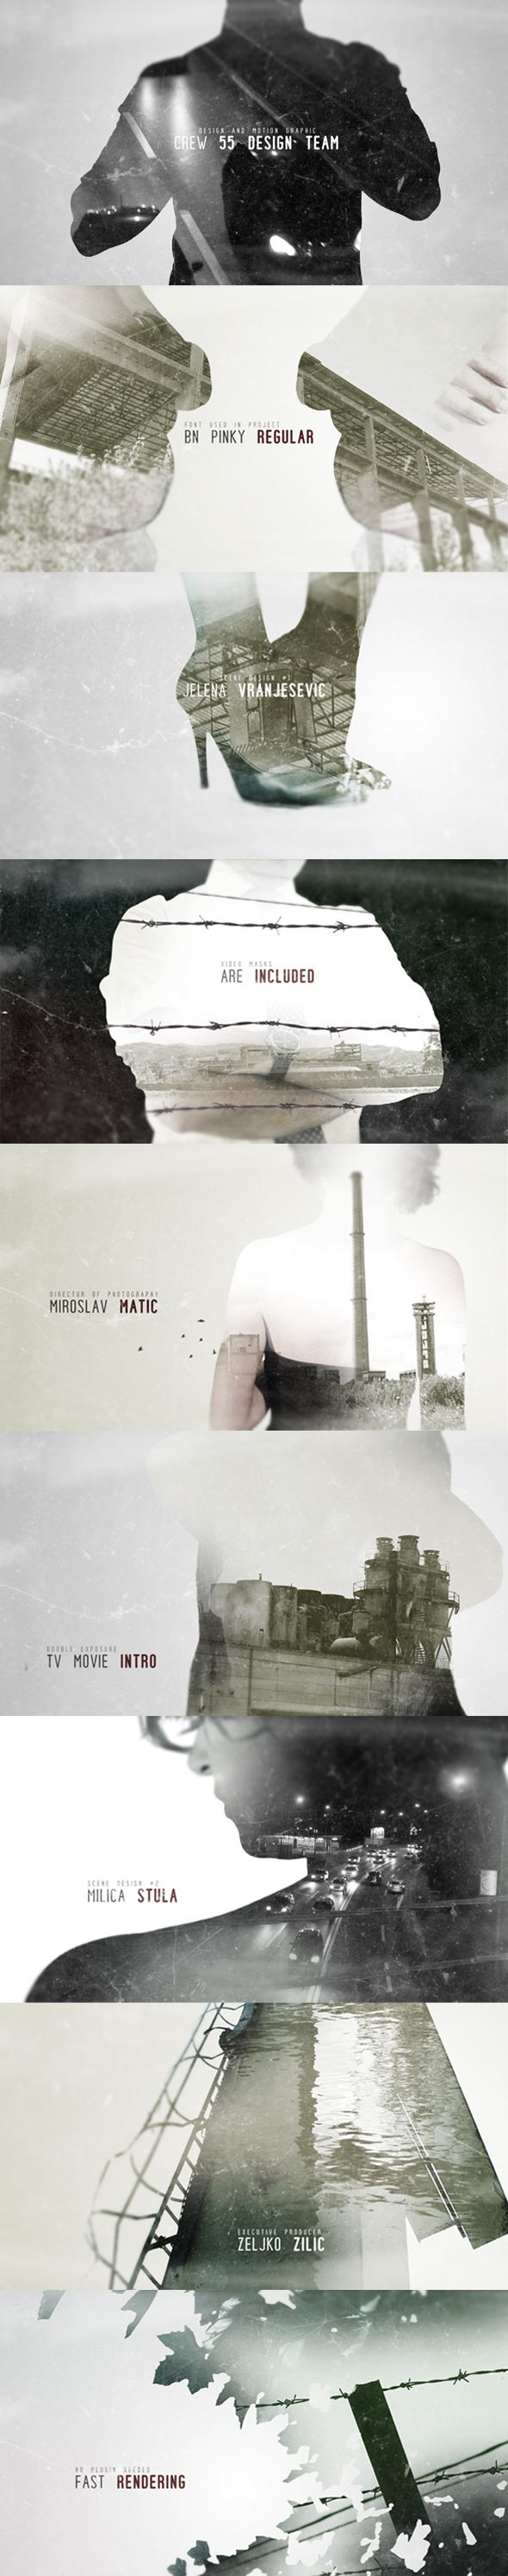 Double Exposure Movie Intro - After Effects Project Files   VideoHive #aftereffects #double #exposure #videohive #video #trailer #movie